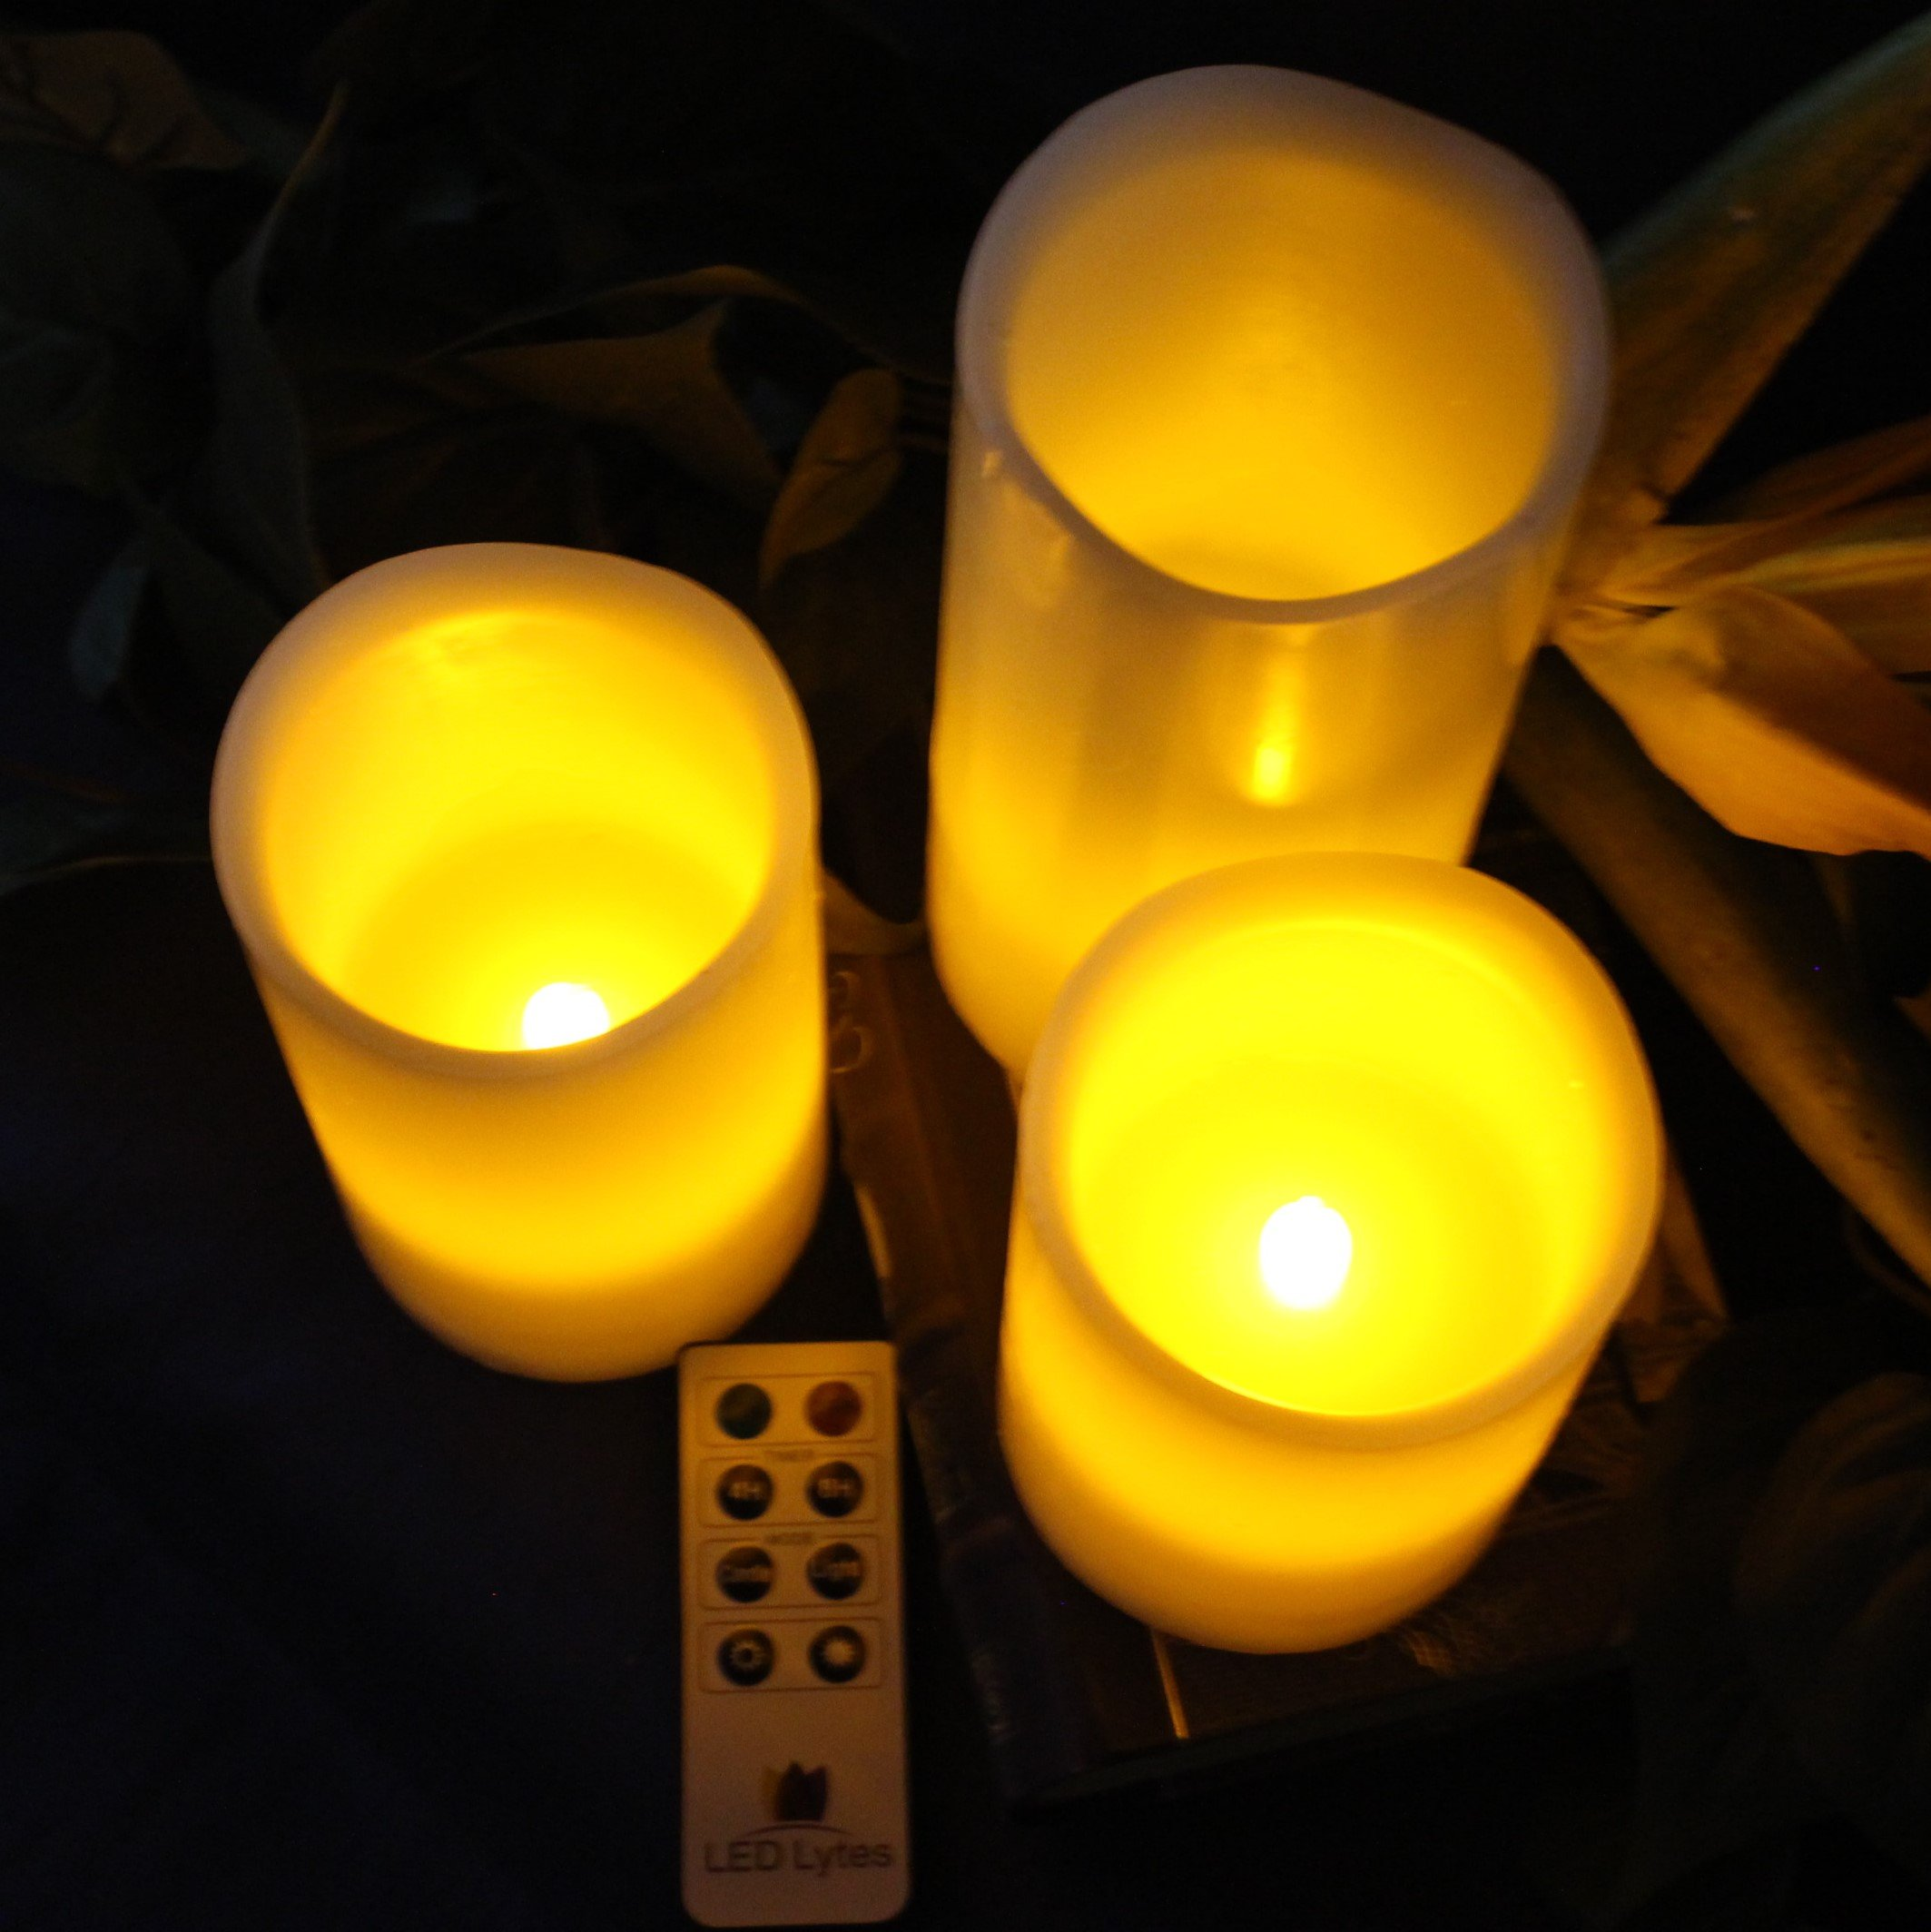 LED Lytes Flickering Flameless Candles - Set of 3 Ivory Wax Flickering Amber Yellow Flame, Auto-Off Timer Remote Control Fake Battery Operated Candles by LED Lytes (Image #4)